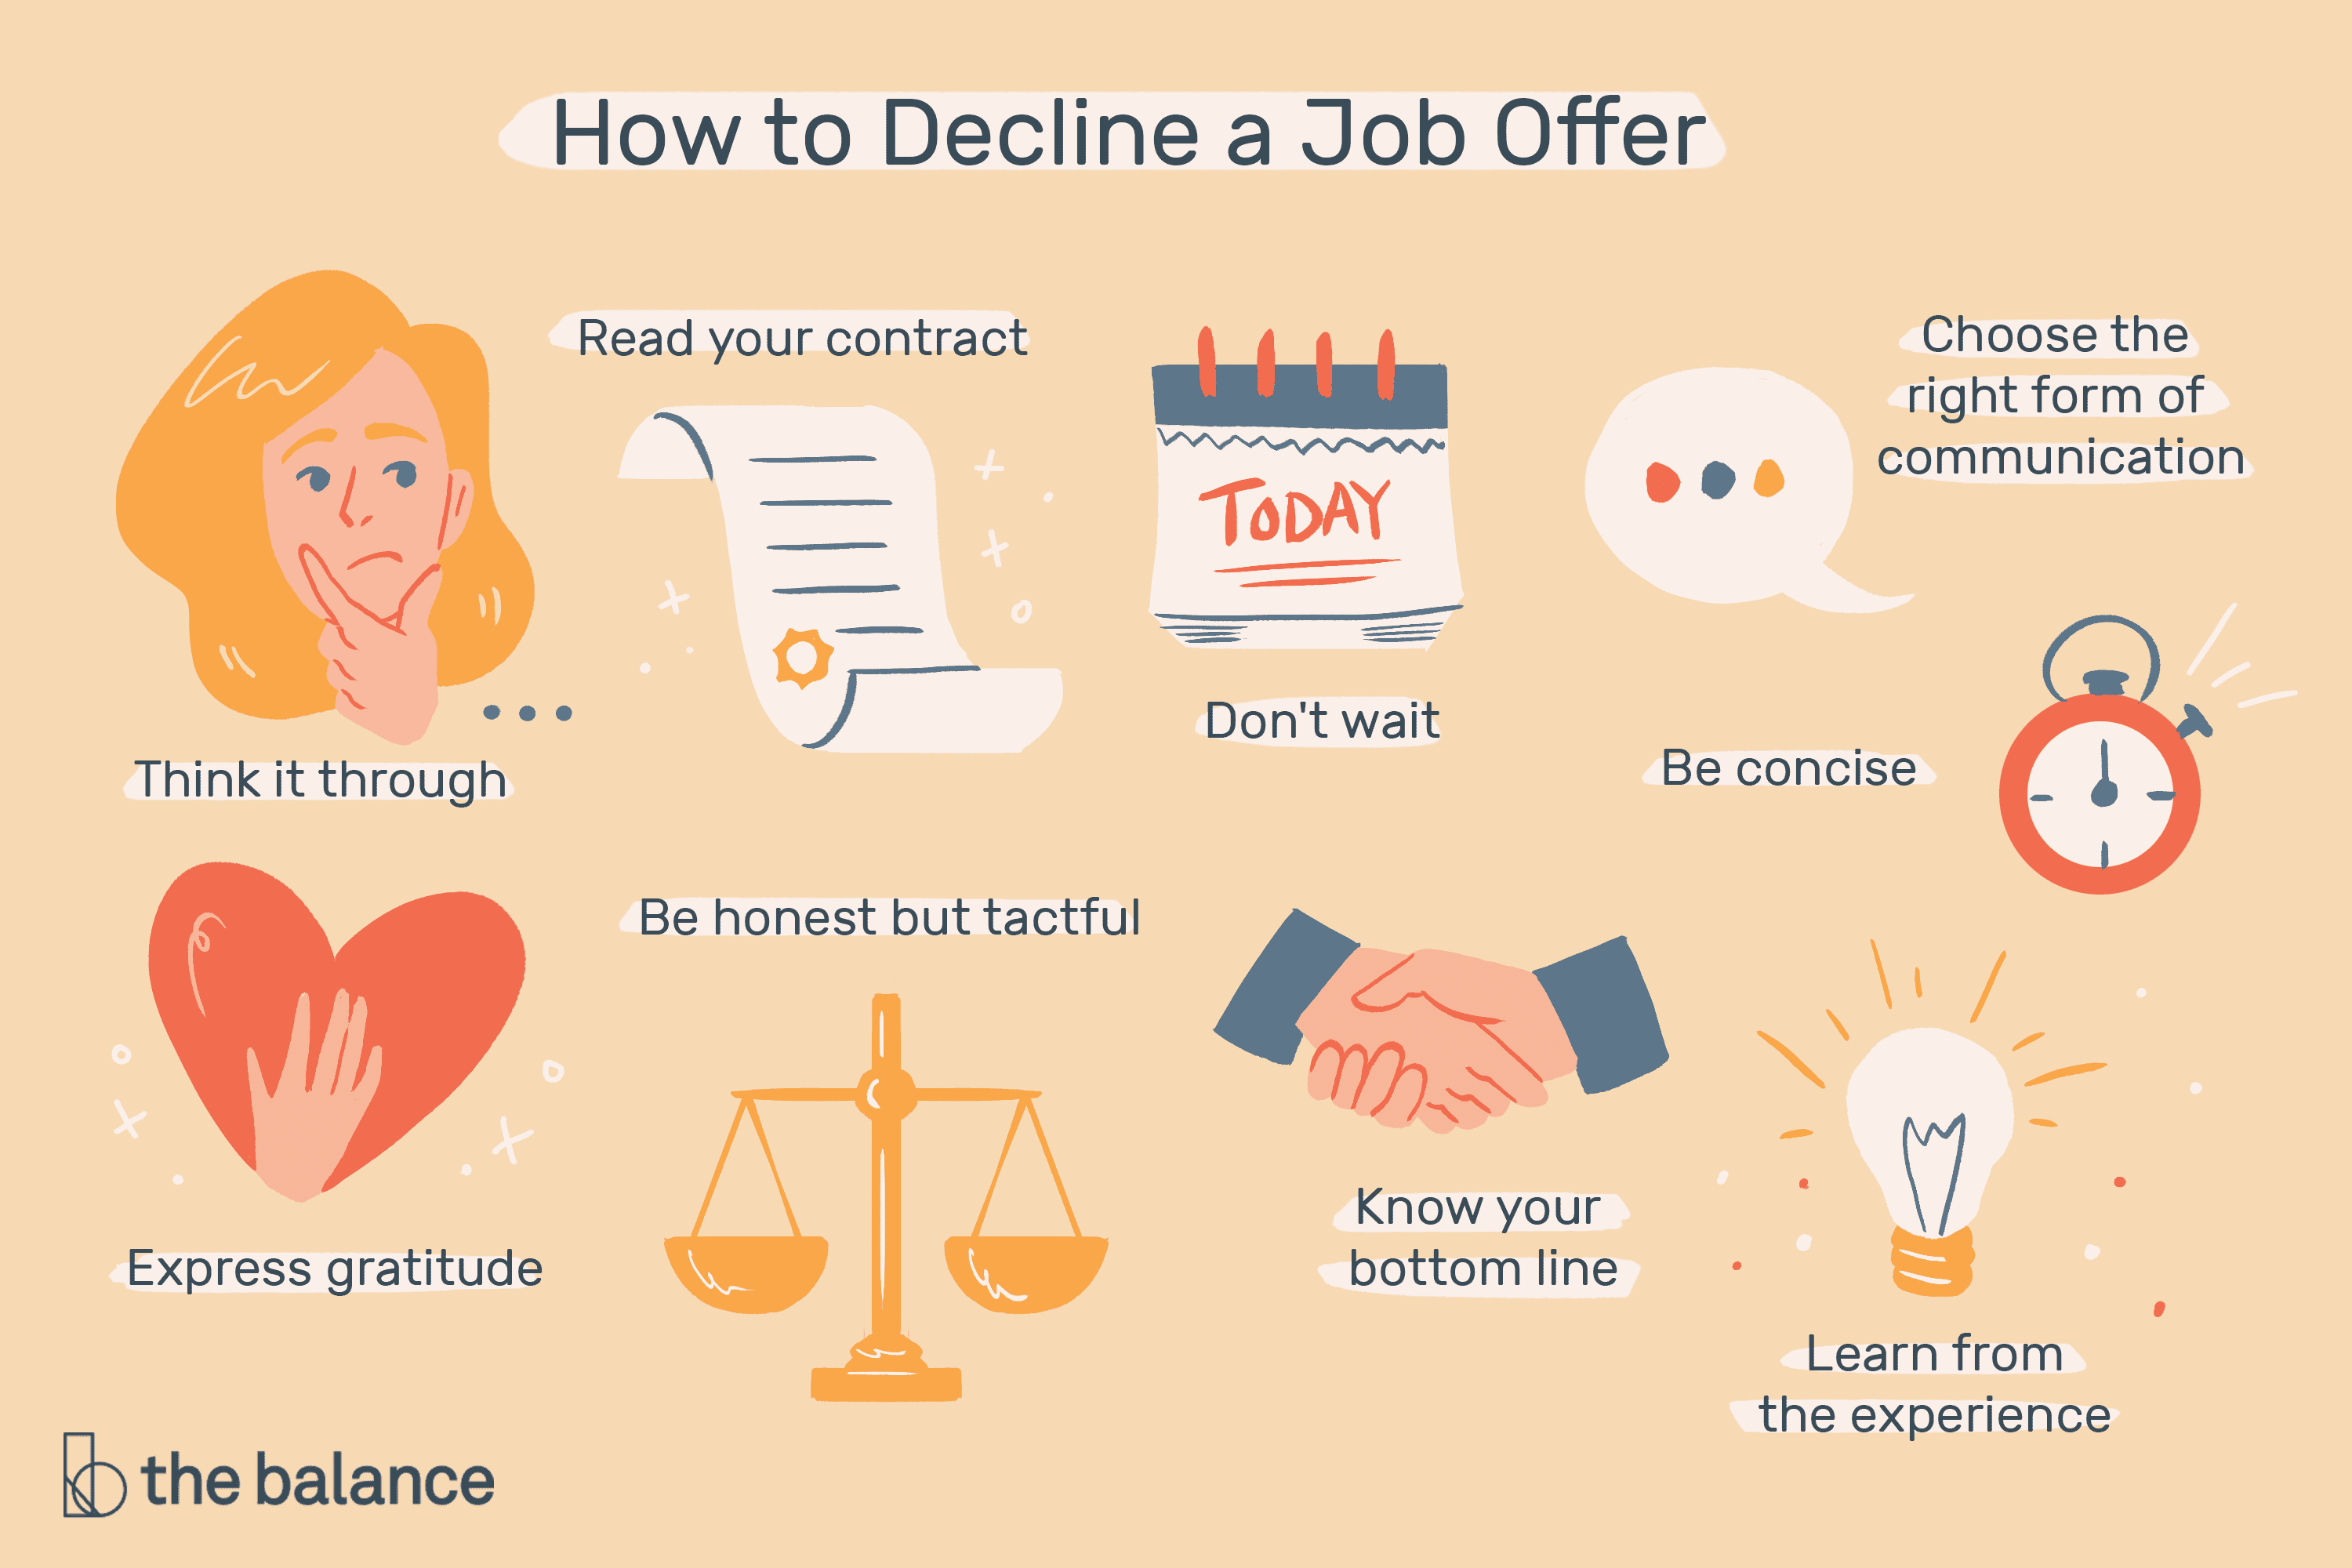 How to Turn Down a Job Offer After You Already Accepted It